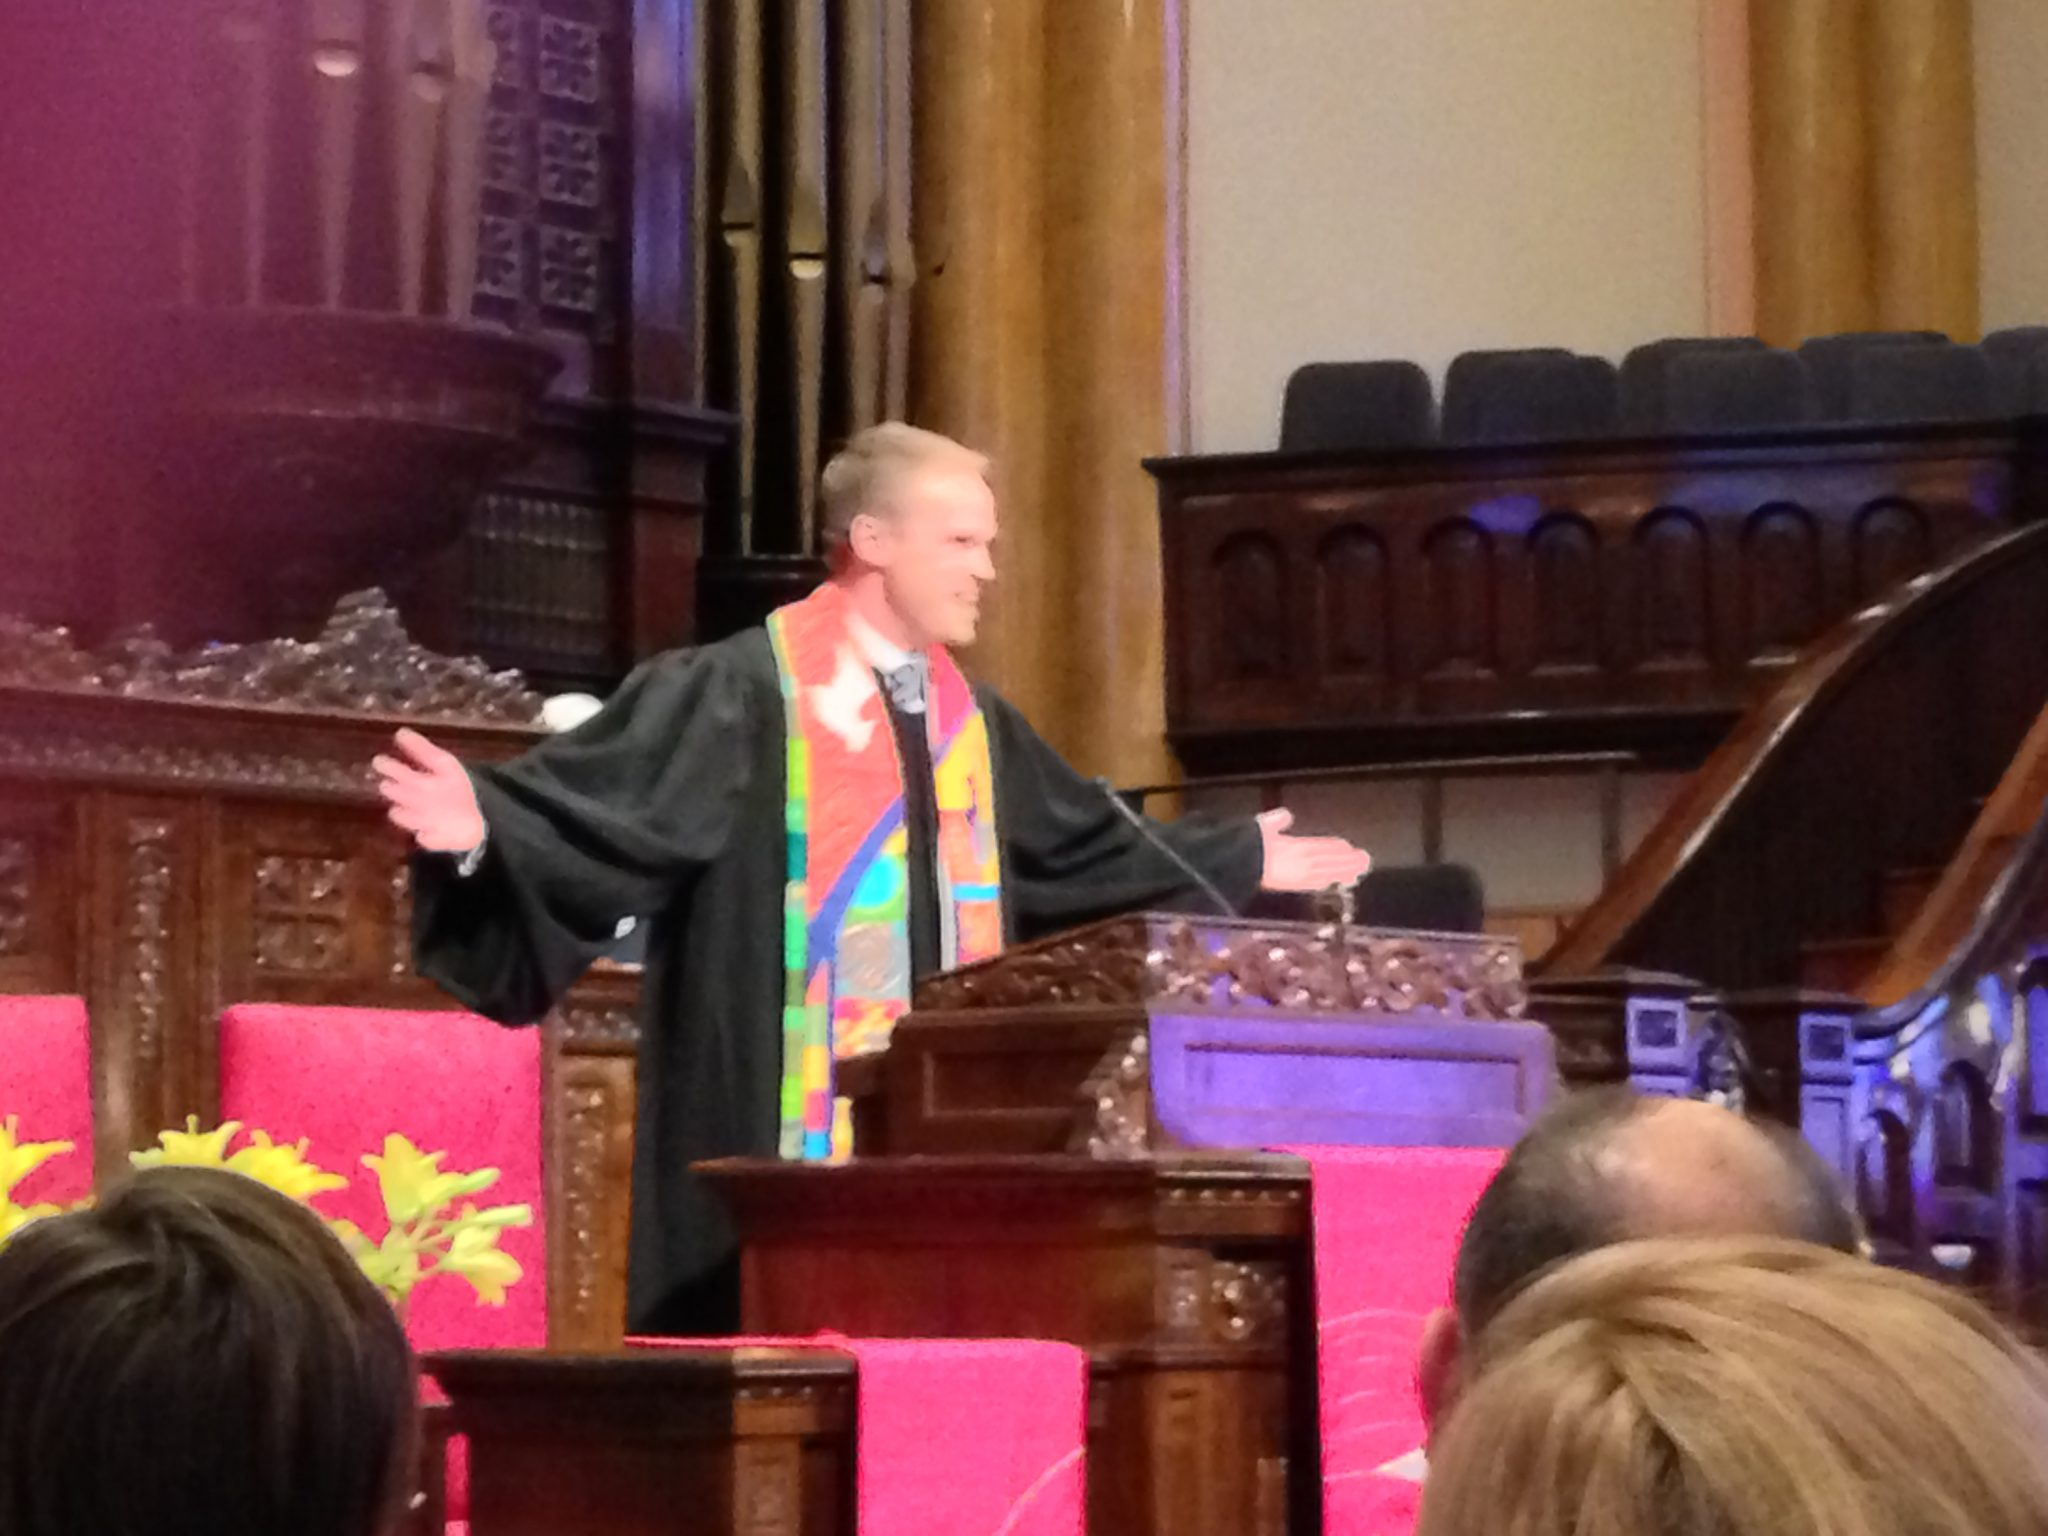 Dan delivers the benediction wearing his new robe and the three stoles given him during the service.